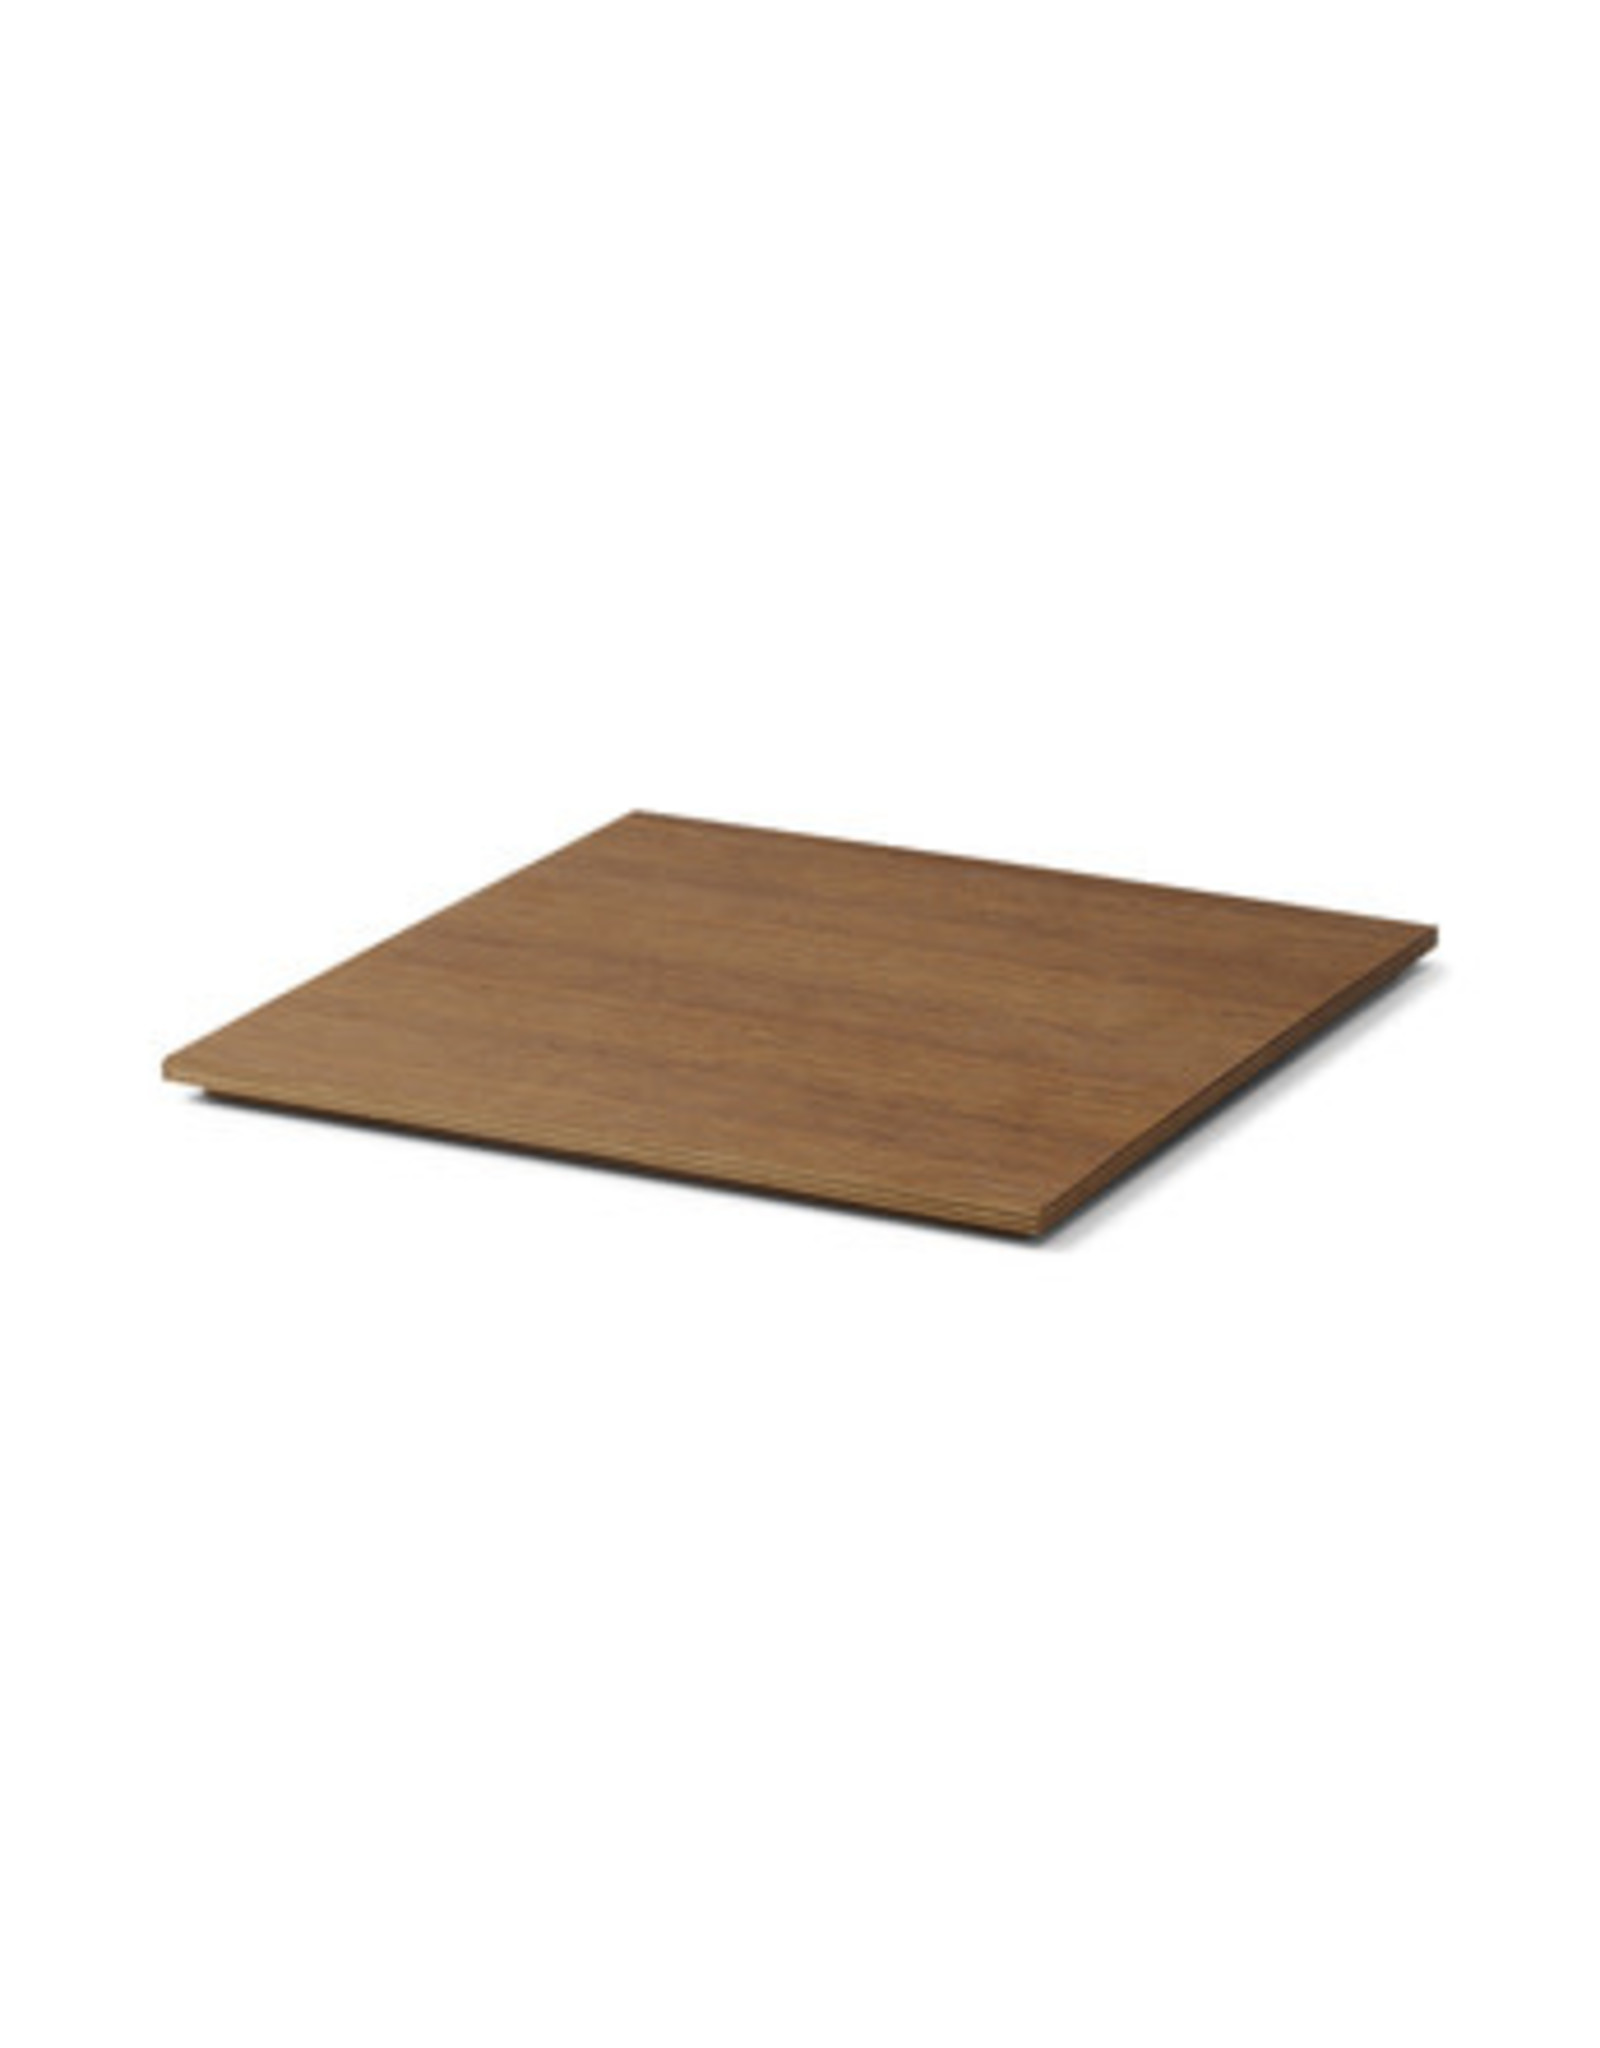 Ferm LIVING ferm LIVING Tray for Plant Box - Wood - Smoked Oak